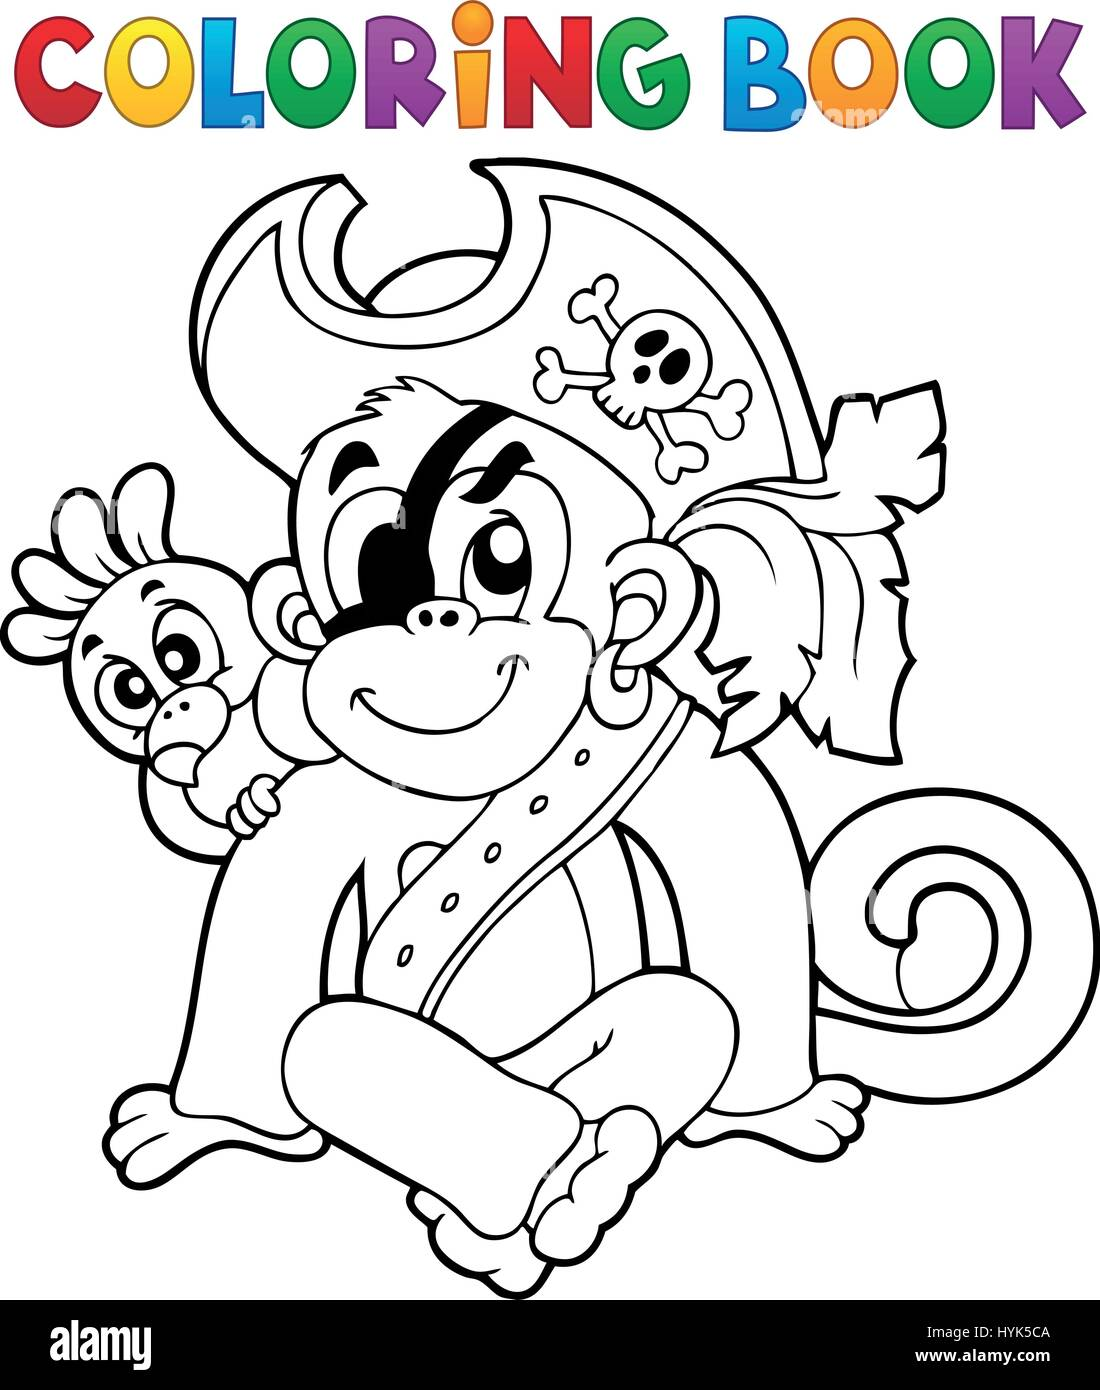 Coloring book pirate monkey image 1 - eps10 vector illustration ...